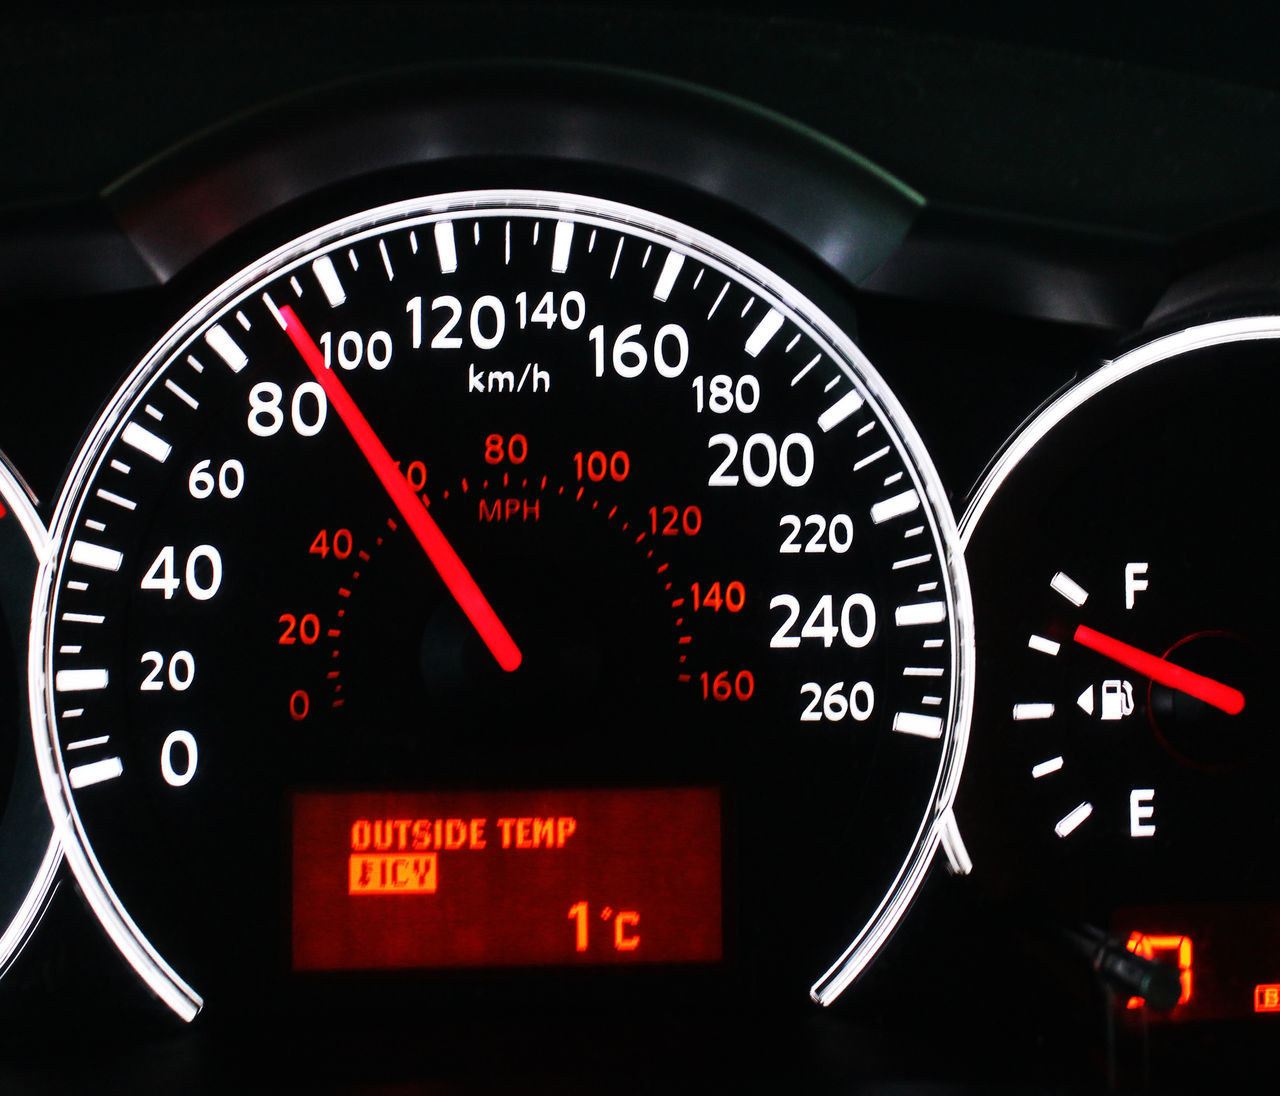 Modern car instrument dashboard panel Car Car Interior Close-up Control Panel Dashboard Day Driving Engine Gauge Illuminated Indoors  Kilometers Per Hour Land Vehicle Legal Speed Mode Of Transport No People Number Speed Limit Sign Speedometer Transportation Vehicle Interior